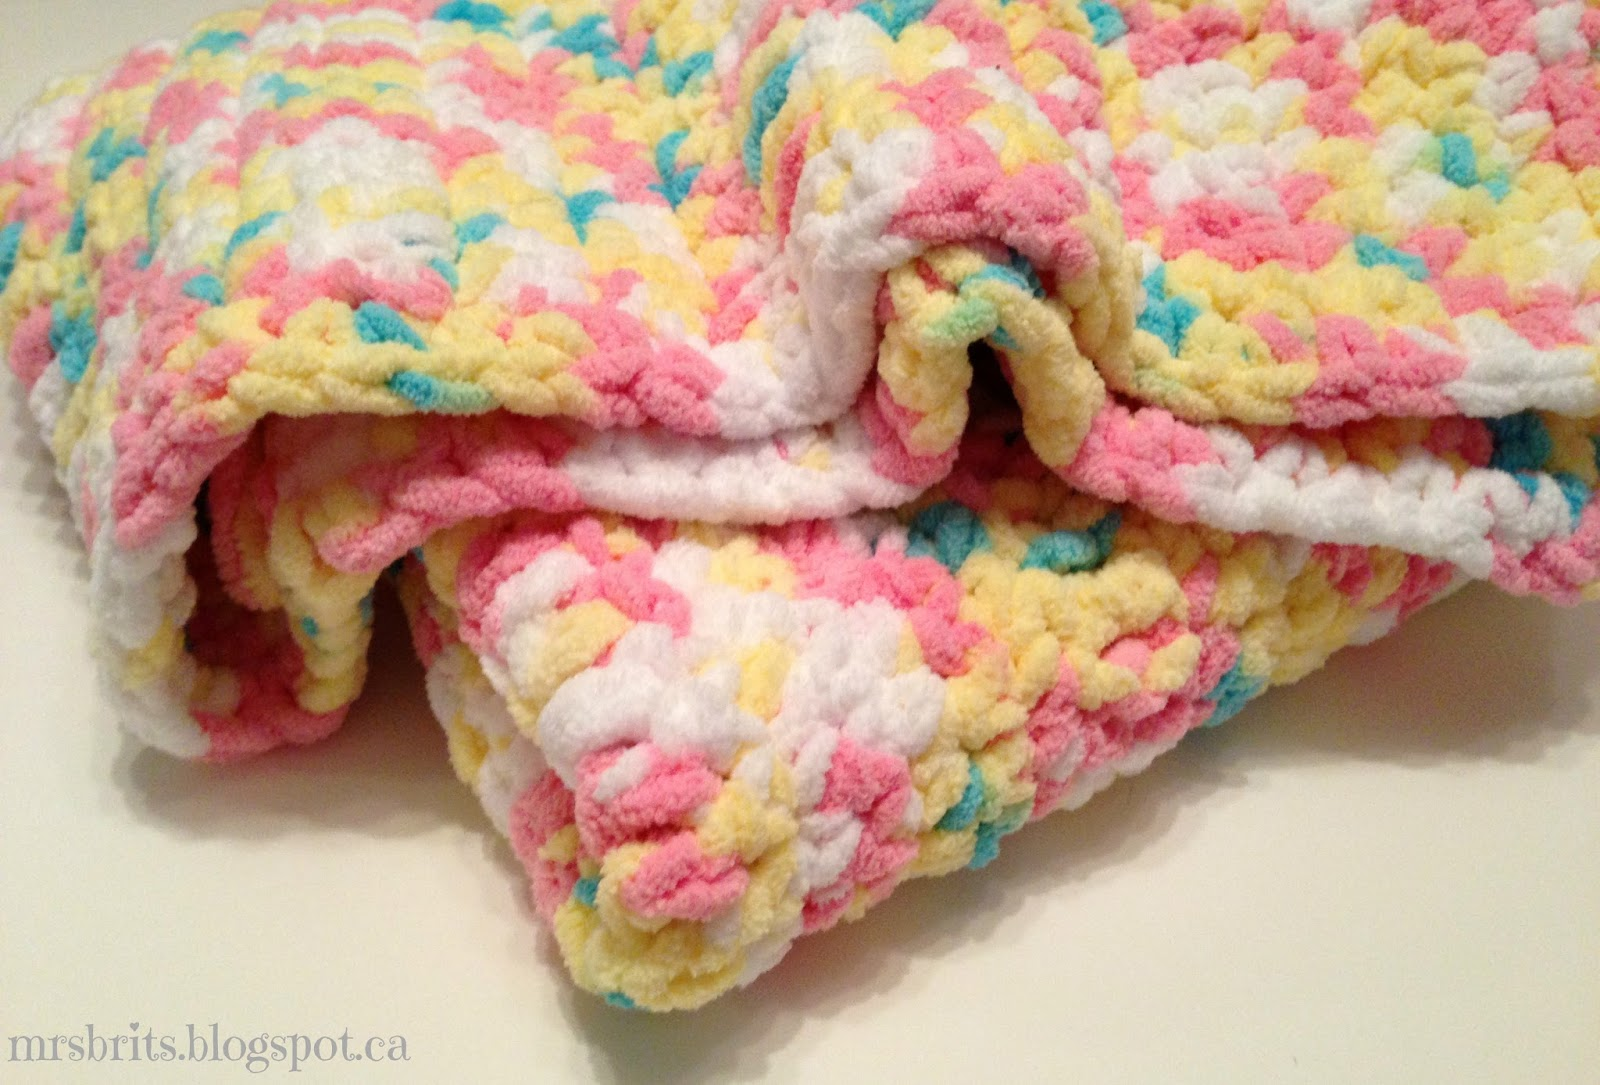 Crochet Patterns Using Chunky Yarn : MrsBrits: Sweet and Chunky Baby Afghan {Crochet Pattern}